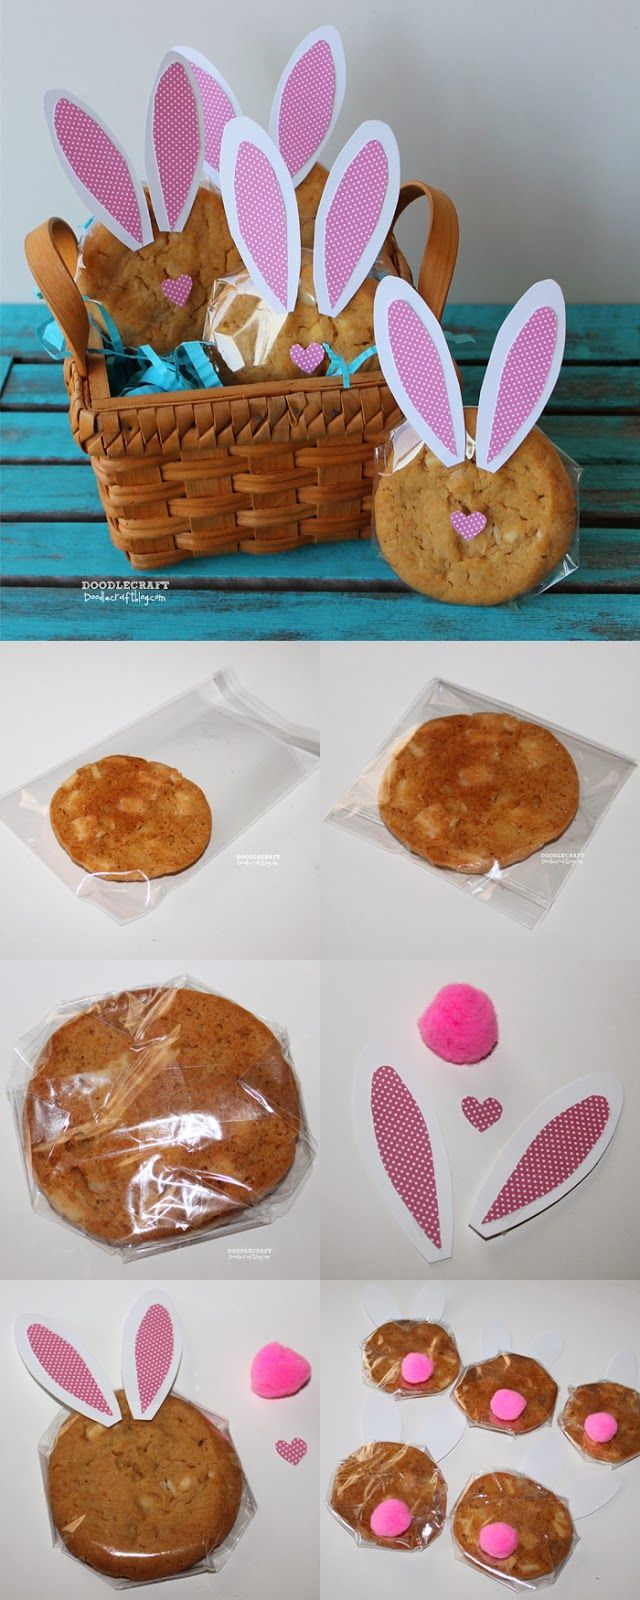 193 best easter giftstreats images on pinterest hoppy easter cookies bunny ear cutouts a basket cellophane and a fuzzy tail and youre all set for easter thanks doodlecraft negle